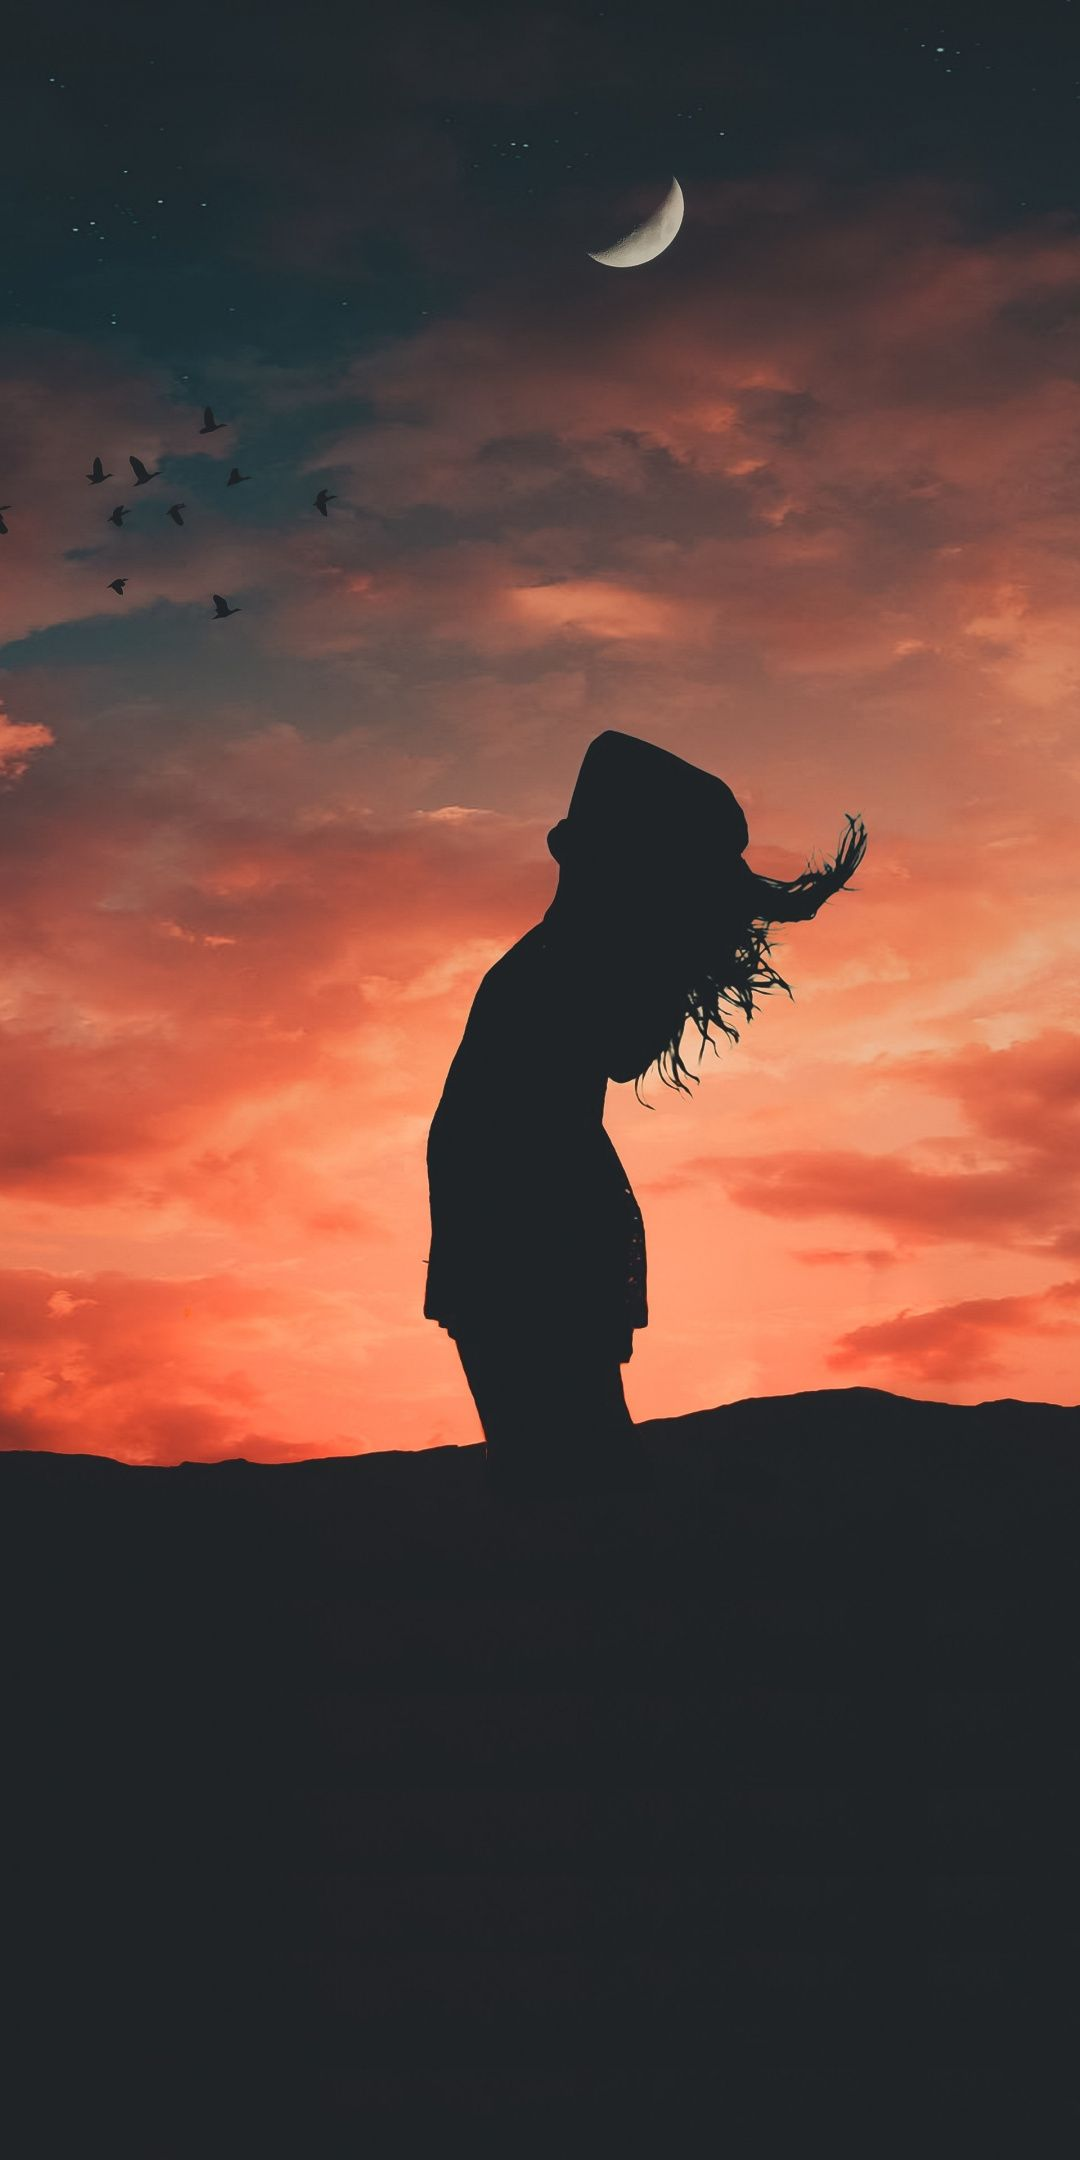 Sunset Girl Freedom Outdoor Relaxed Silhouette 1080x2160 Wallpaper Shadow Pictures Sunset Girl Alone Girl Pic